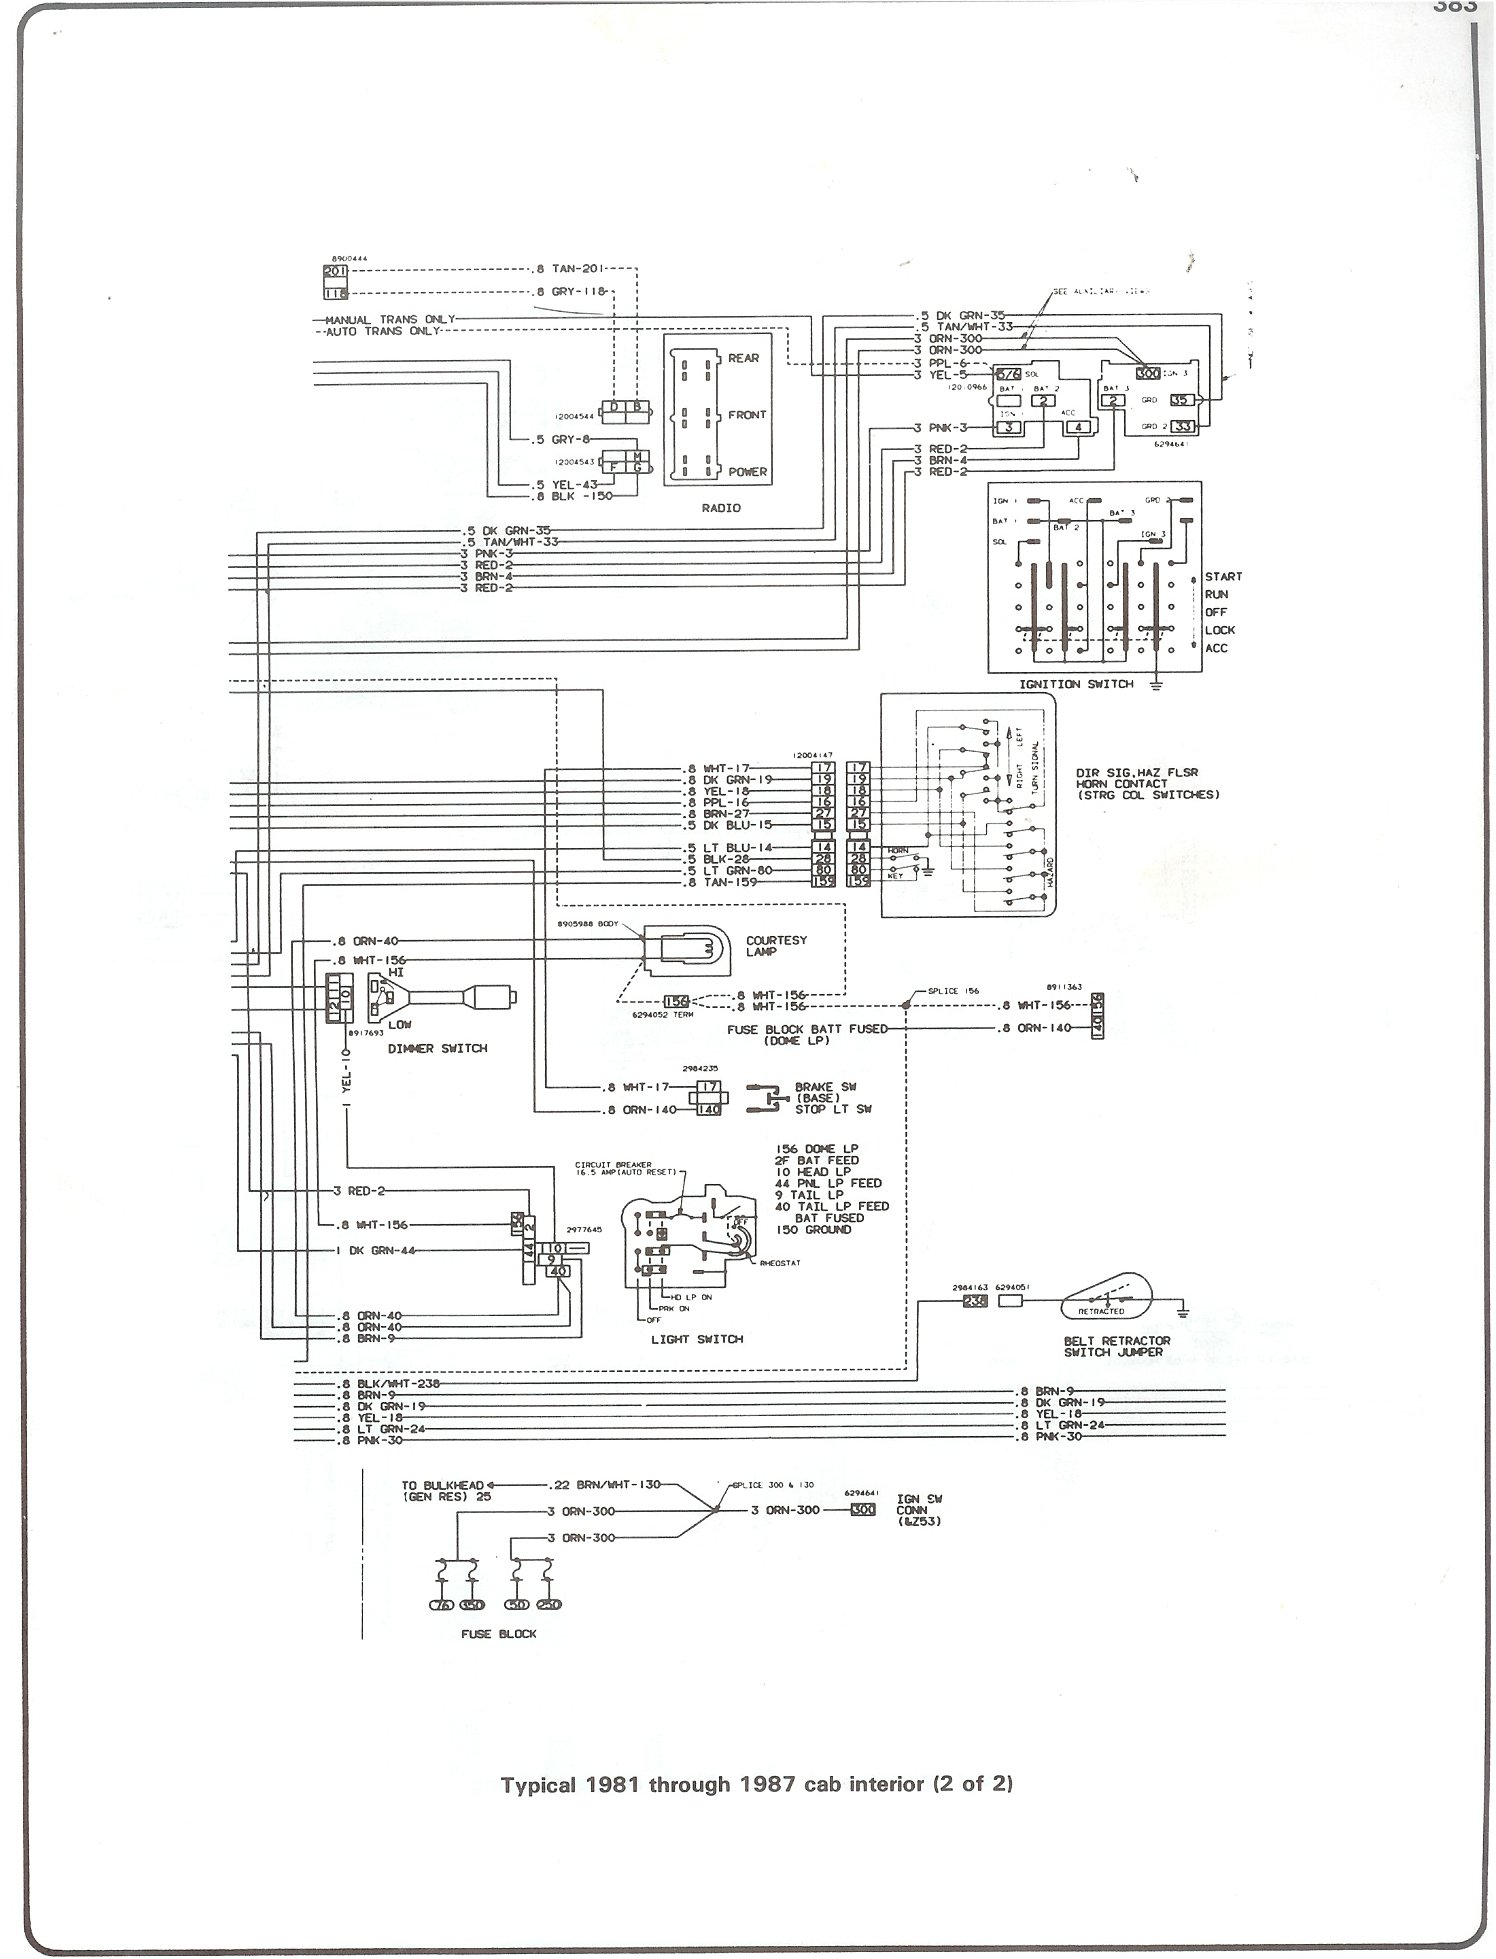 Complete 73-87 Wiring Diagrams on 1985 gmc fuse box diagram, 1986 gmc wiring diagram, 1991 gmc wiring diagram, 1985 gmc fuel tank, 1985 gmc parts, 1985 toyota pickup vacuum diagram, 1985 gmc engine diagram, gmc s15 wiring diagram, 2008 toyota tundra wiring diagram, 2007 toyota tacoma wiring diagram, 2011 toyota tacoma wiring diagram, 1985 gmc body, 1984 gmc wiring diagram, 85 corvette wiring diagram, 1985 gmc steering column diagram, 1985 gmc vacuum diagram, gmc sierra wiring diagram, 1985 gmc brakes diagram, 86 corvette dash wiring diagram,